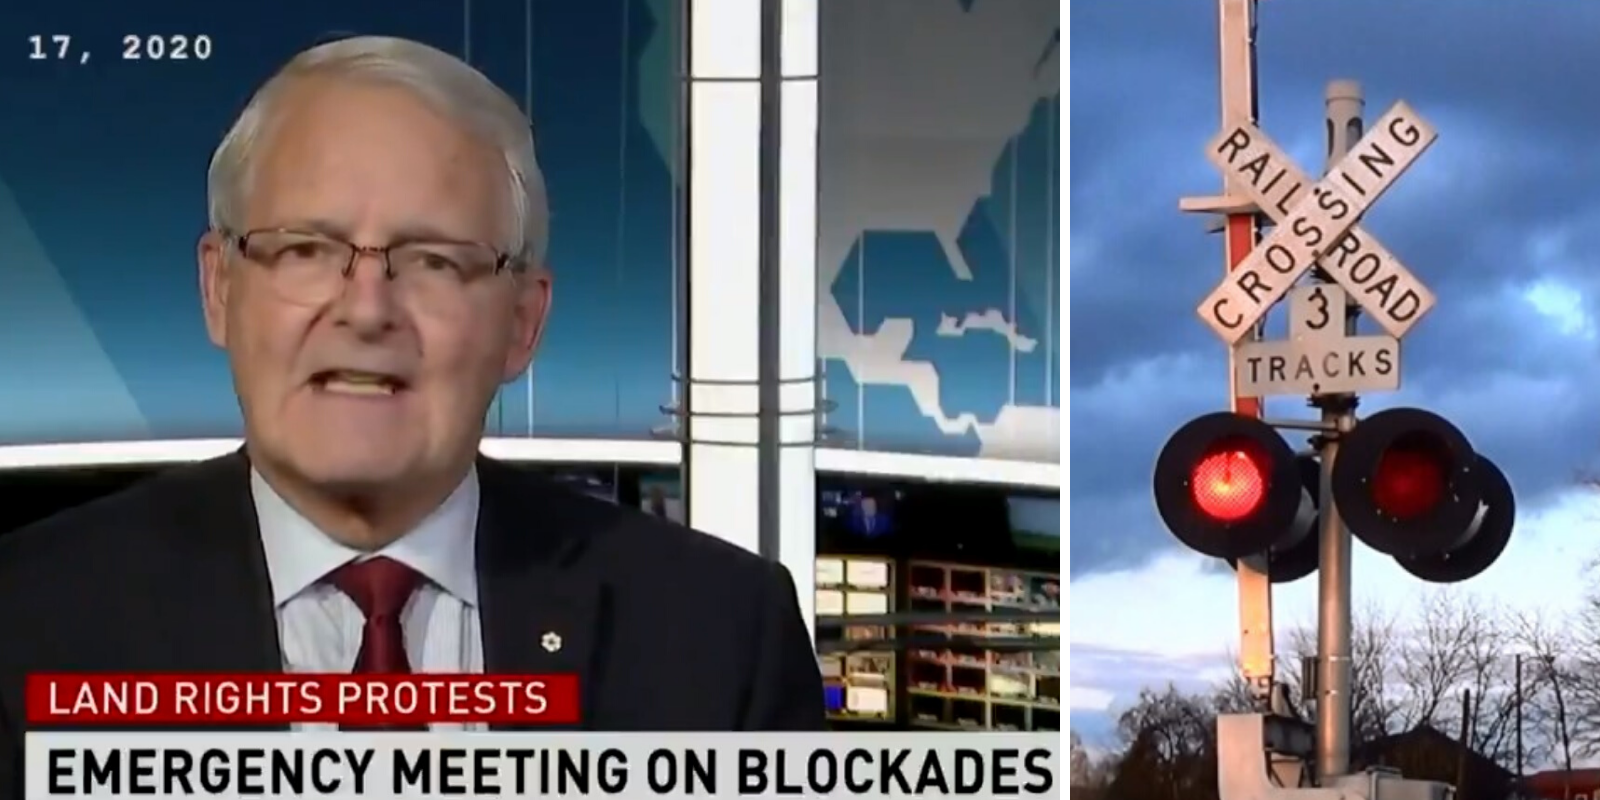 WATCH: Transport minister confirms anti-pipeline protestors tampered with railroad crossings